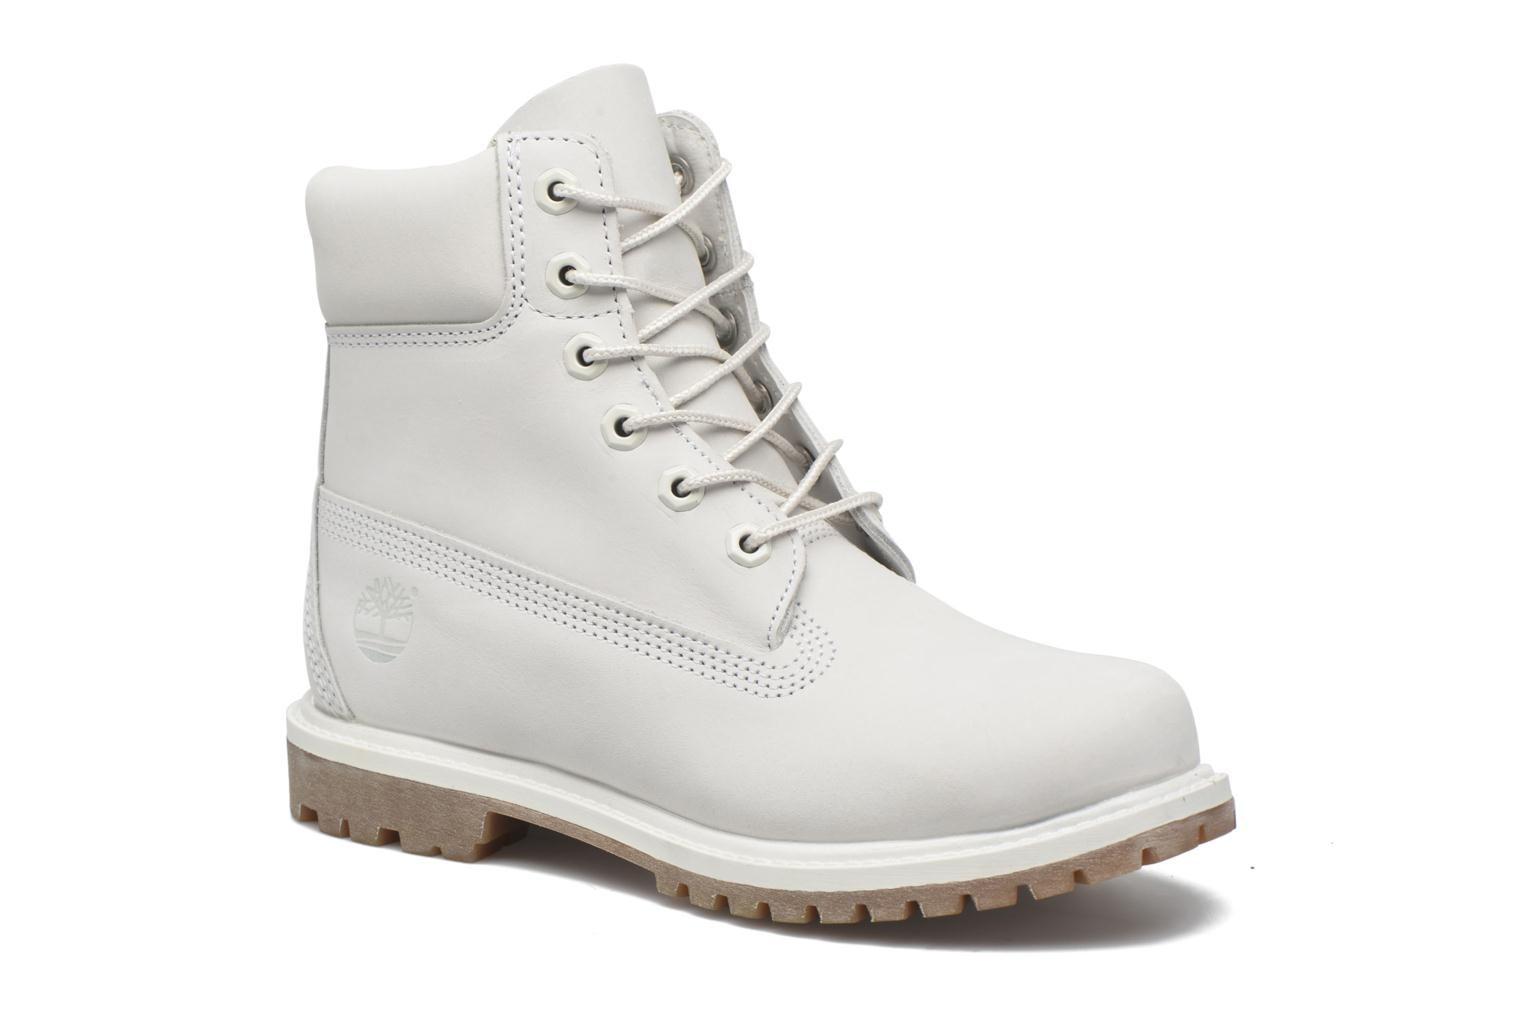 6 in premium boot w by Timberland